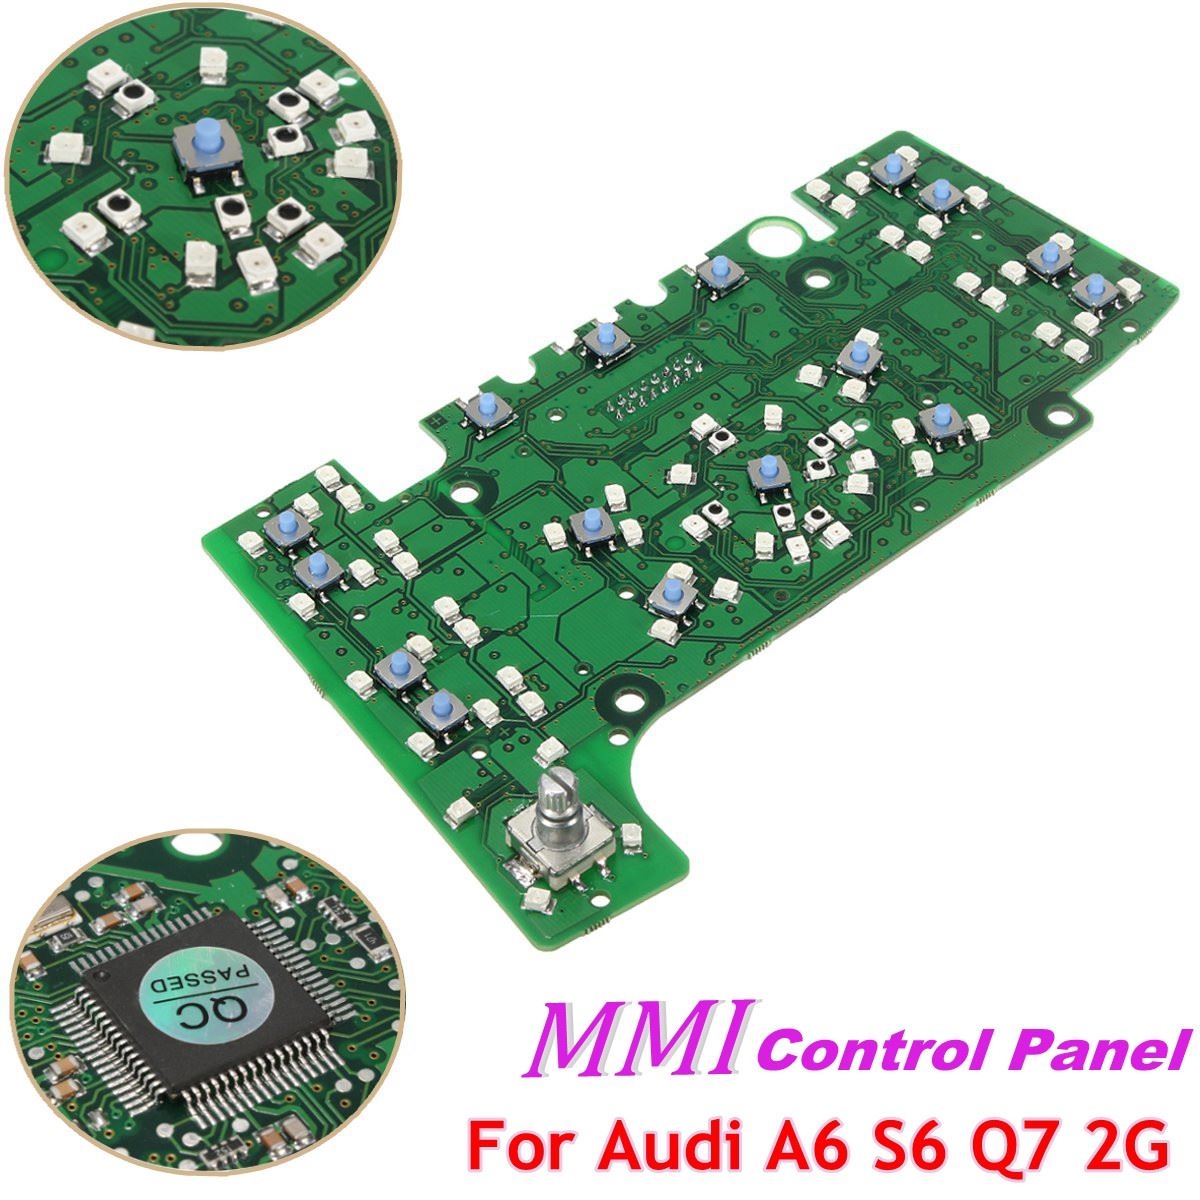 For MMI Multimedia Interface Control Panel Circuit Board For Audi A6 A6L 2005- 2011 Q7 2005 -2008 OEM 4F1919611